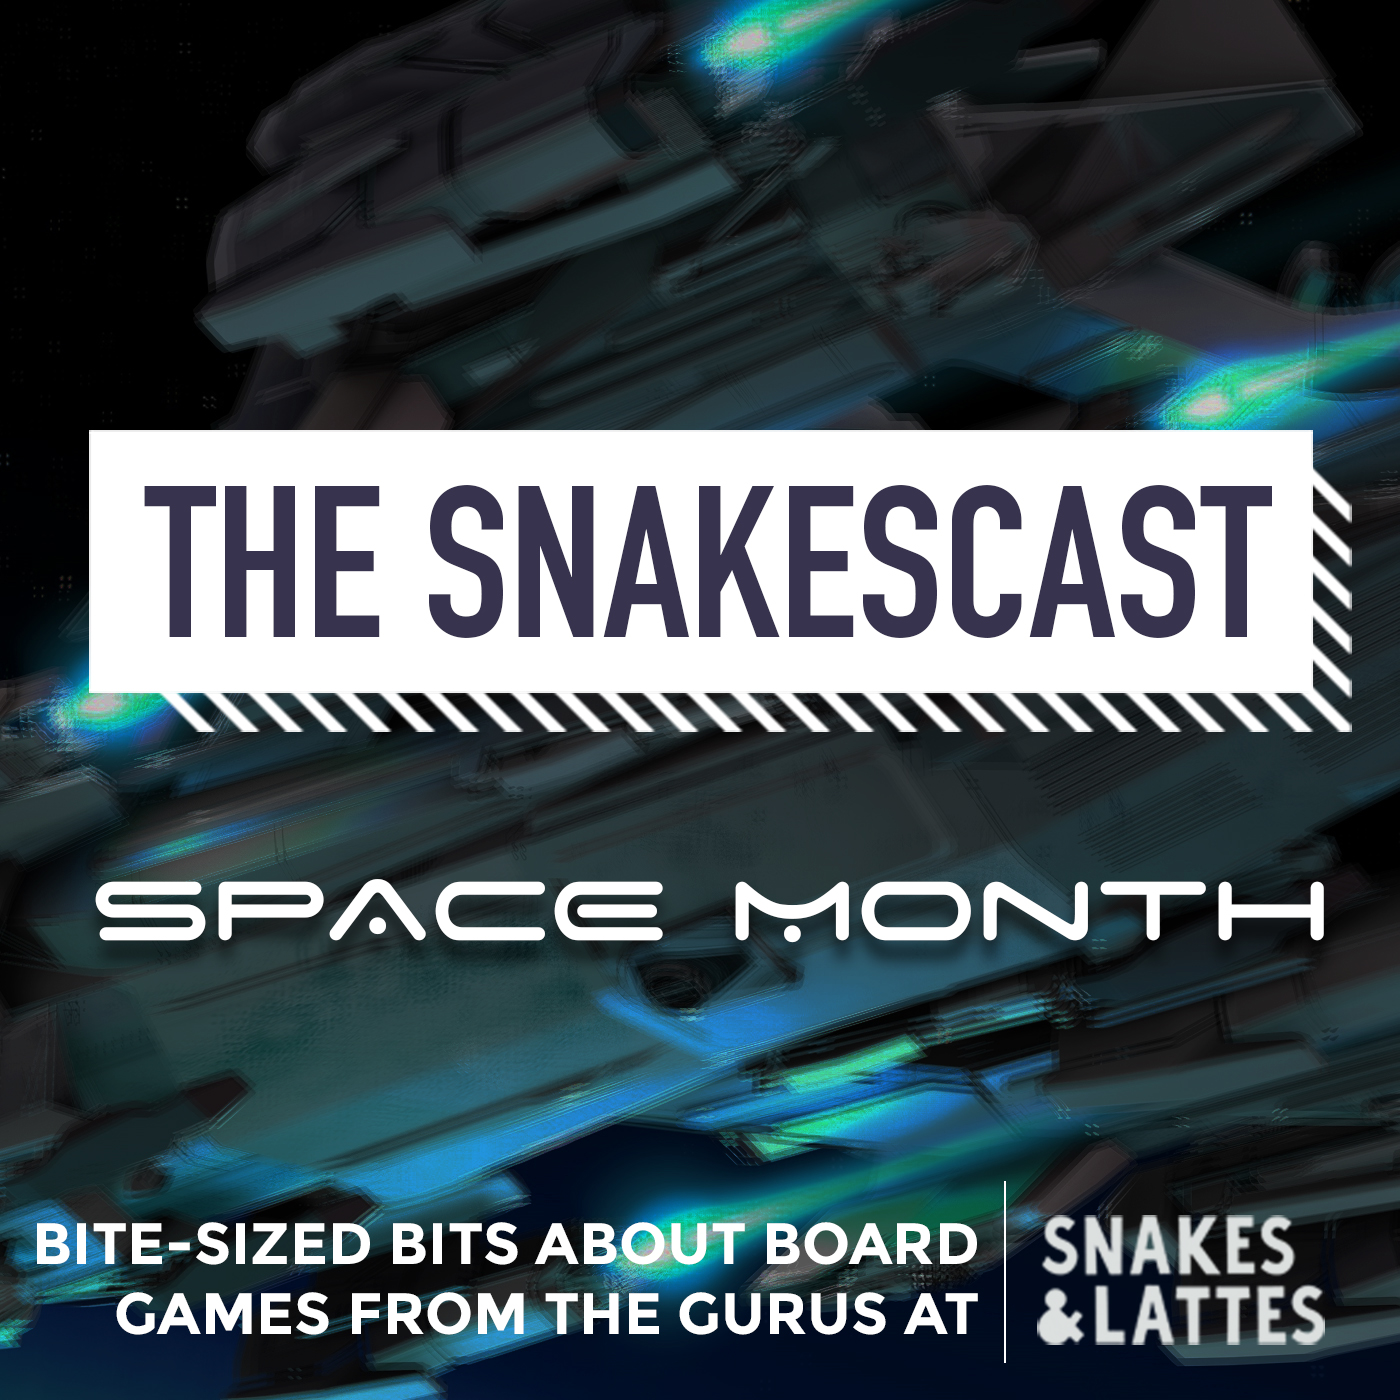 Space Month: Galactic Conquest, Part 1 - The grandest space epic of board gaming